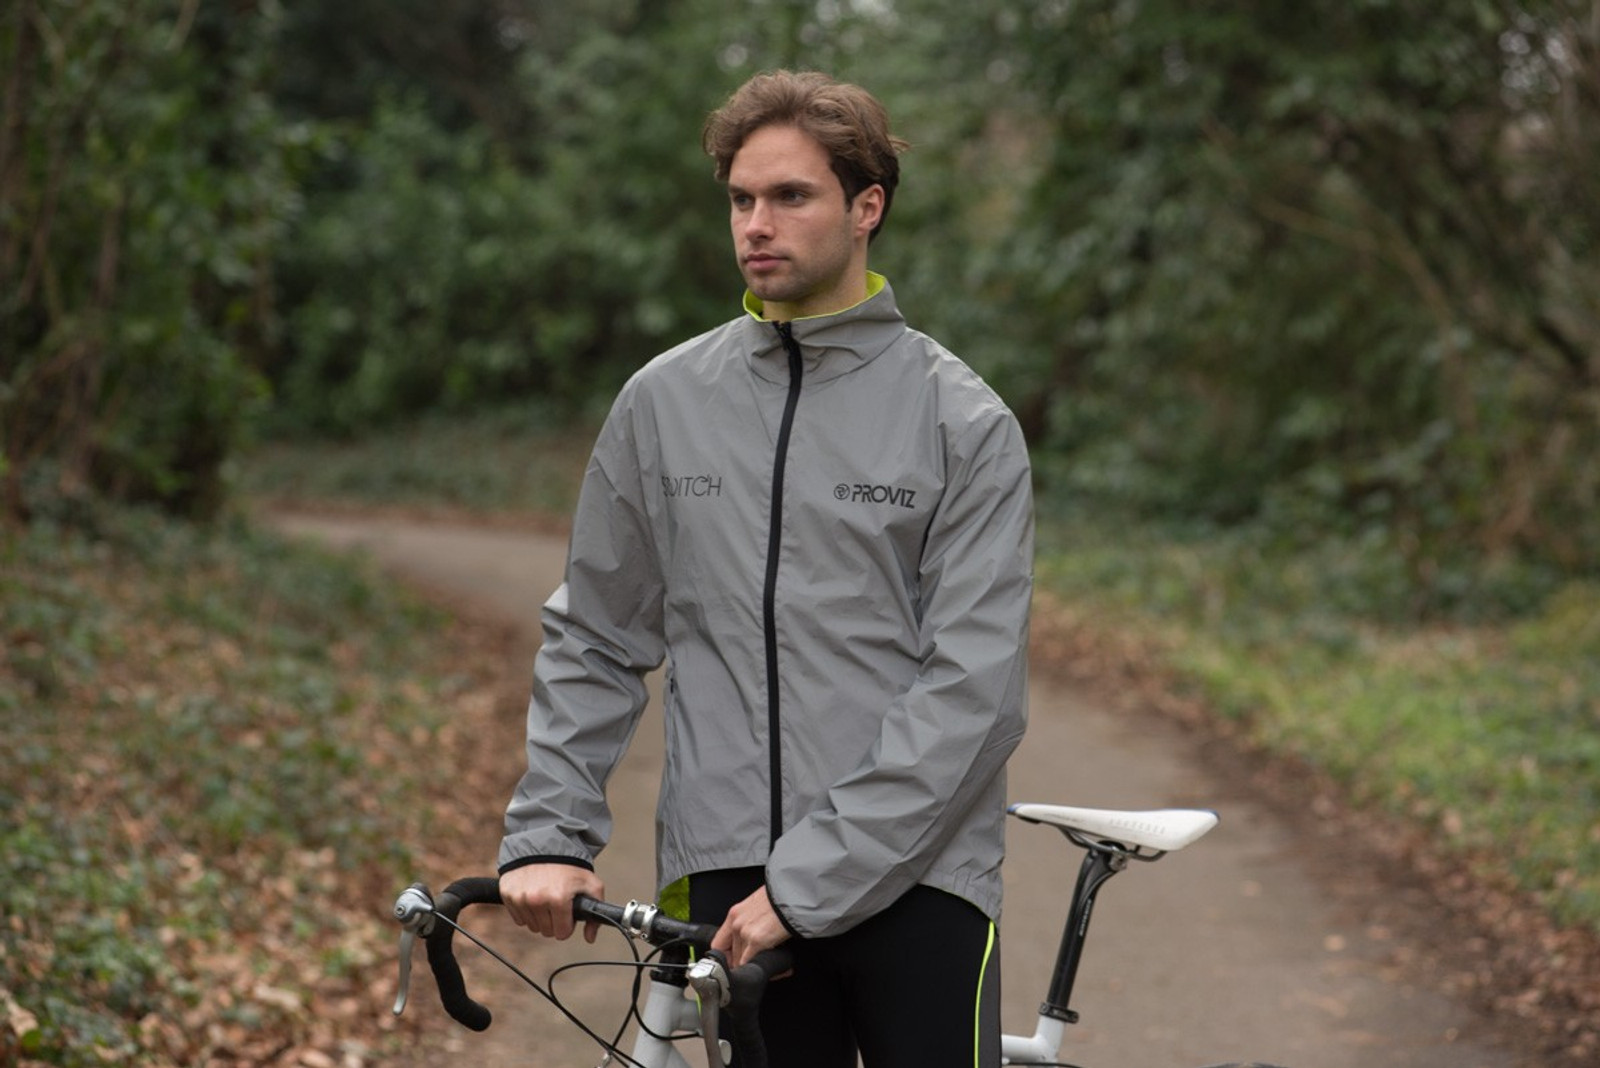 Proviz Switch (Male) - high visibility, reversible cycling jacket